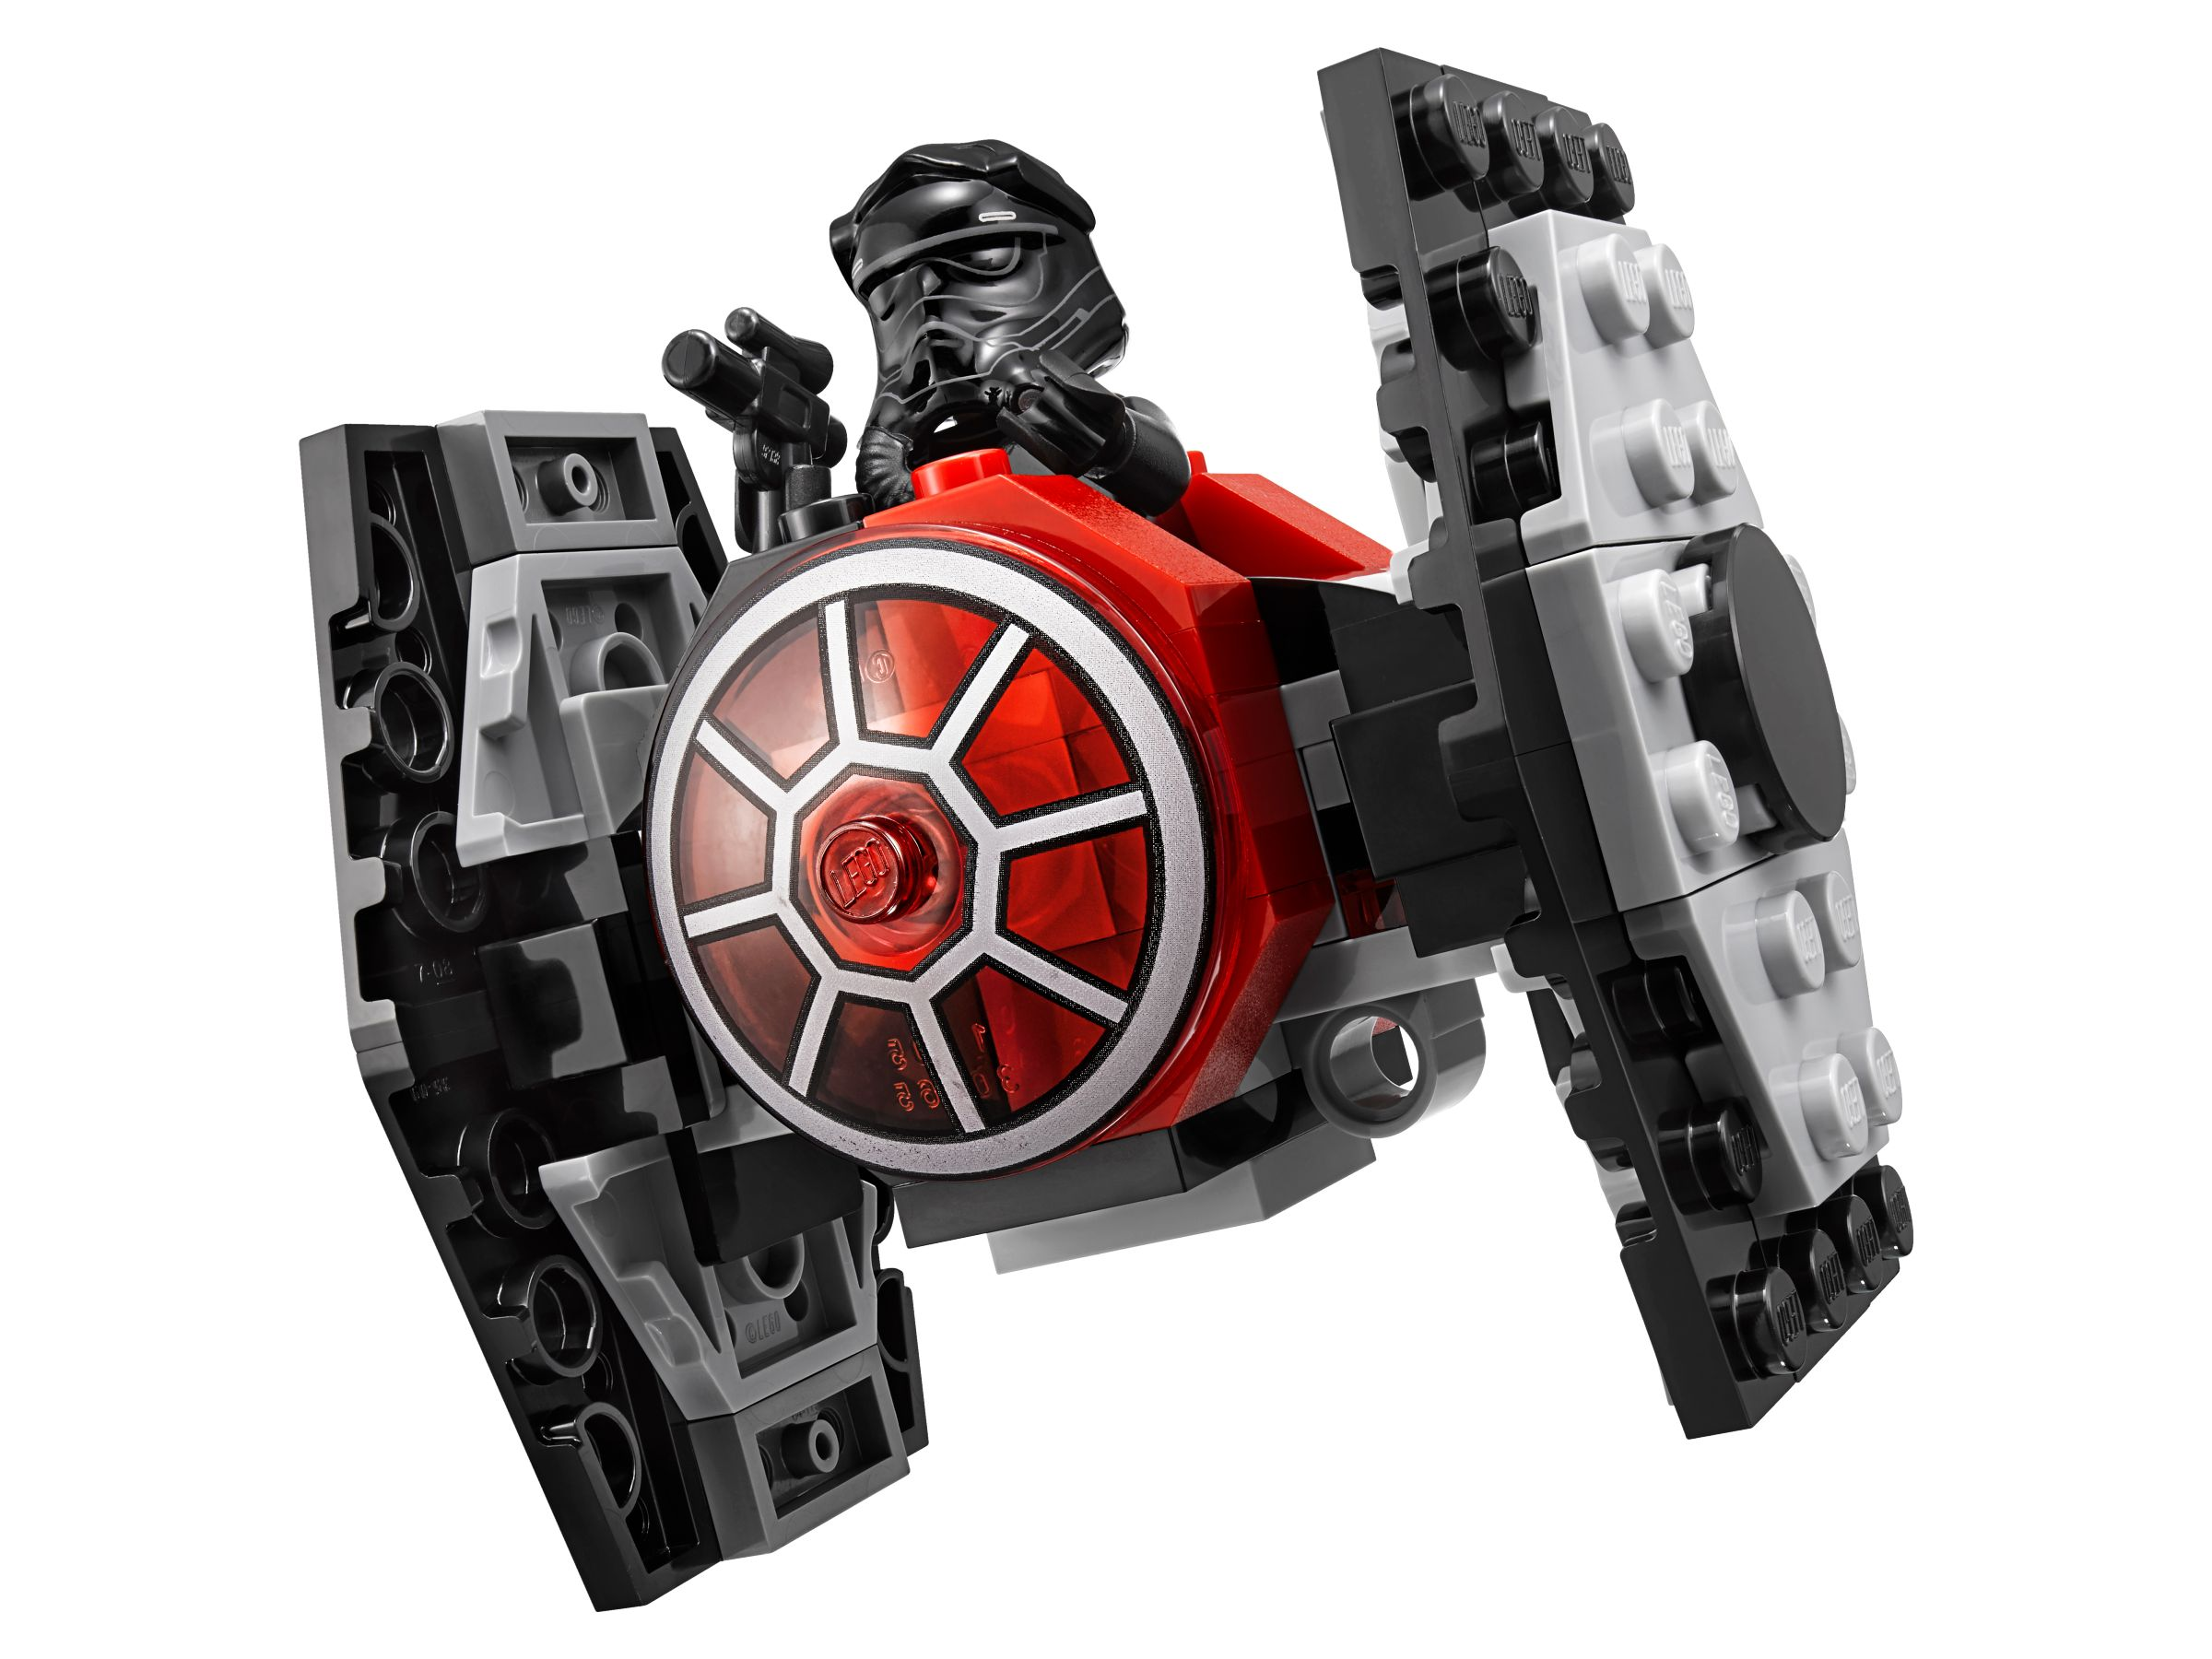 LEGO Star Wars 75194 First Order TIE Fighter Microfighter LEGO_75194_alt3.jpg